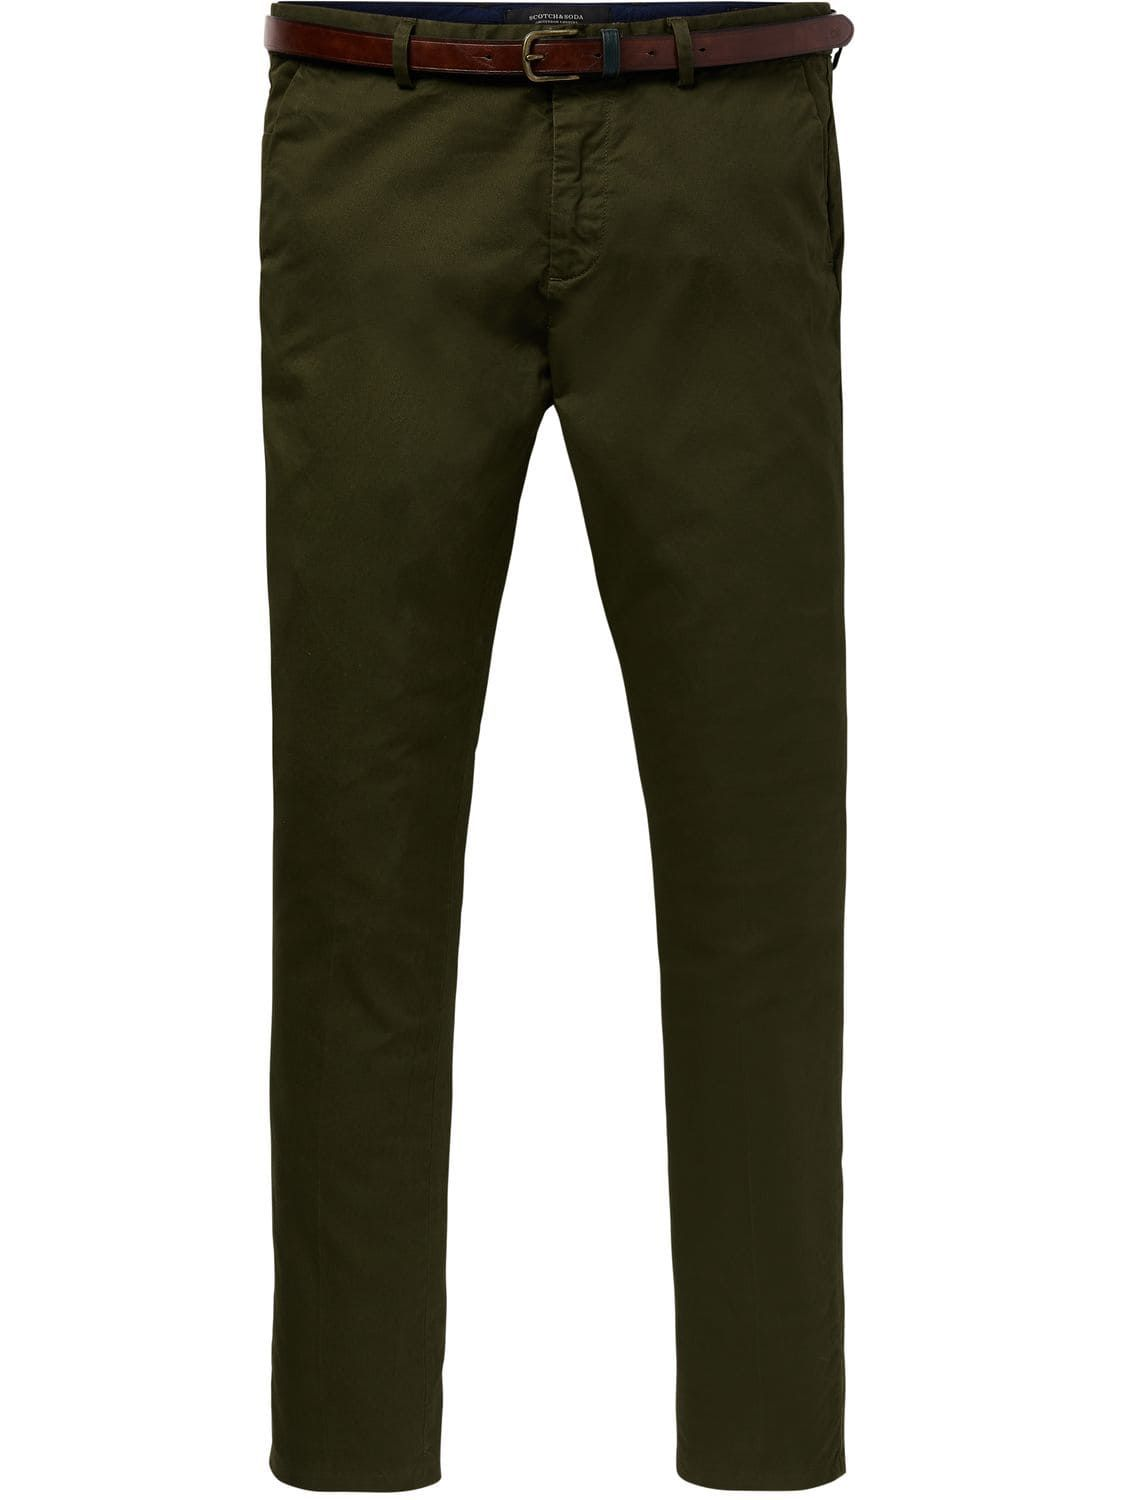 Mott Classic Chinos Super Slim Fit Chinos Slim Fit Slim